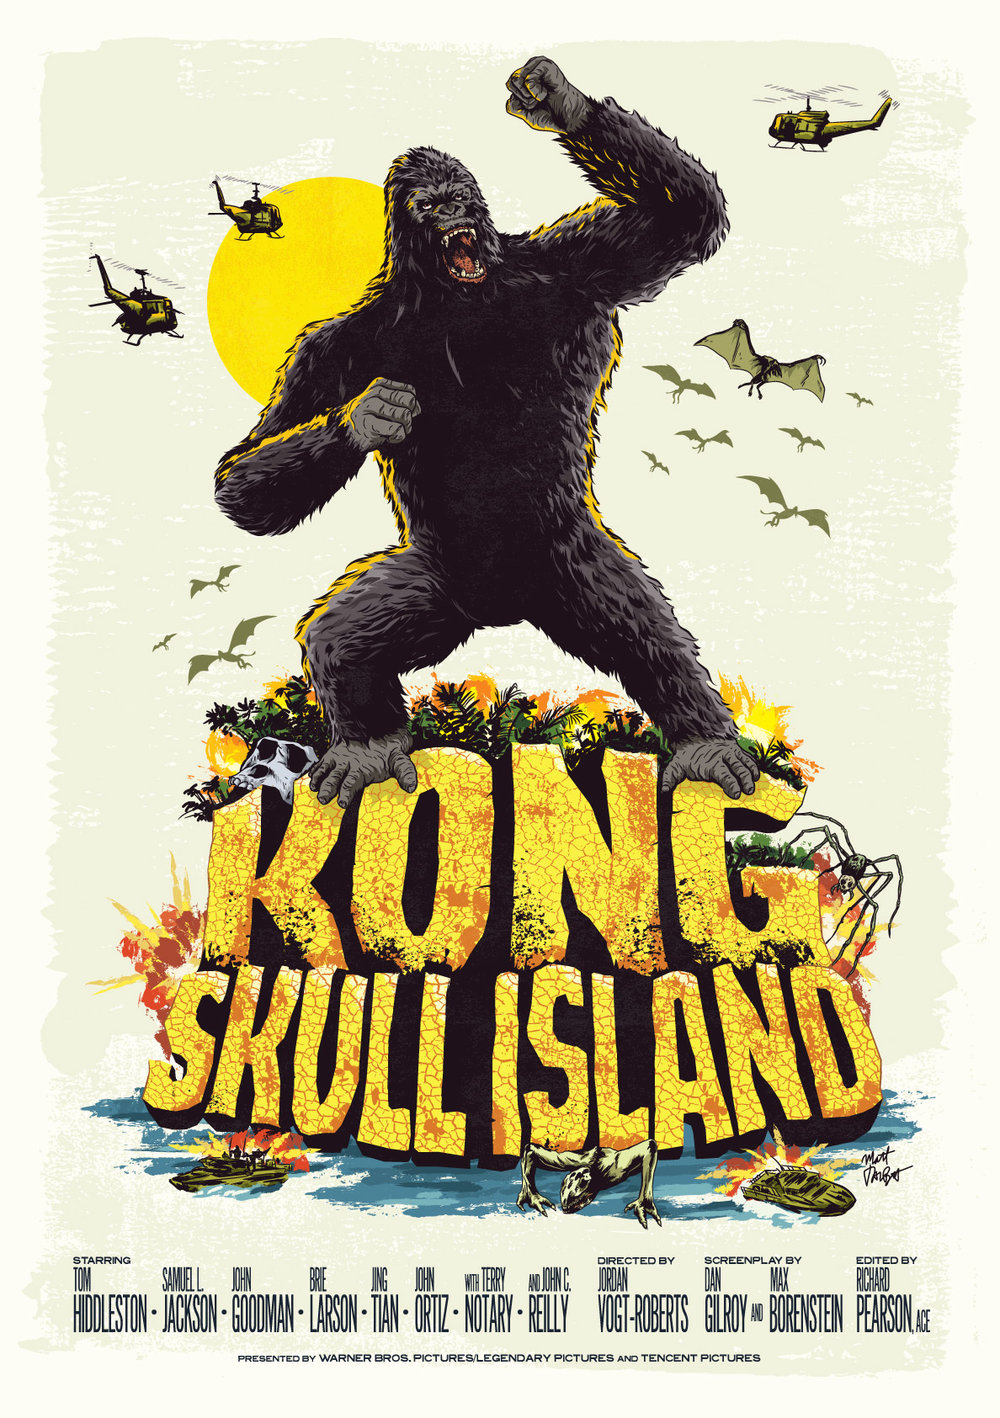 Kong: Skull Island alternative movie poster by Matt Talbot